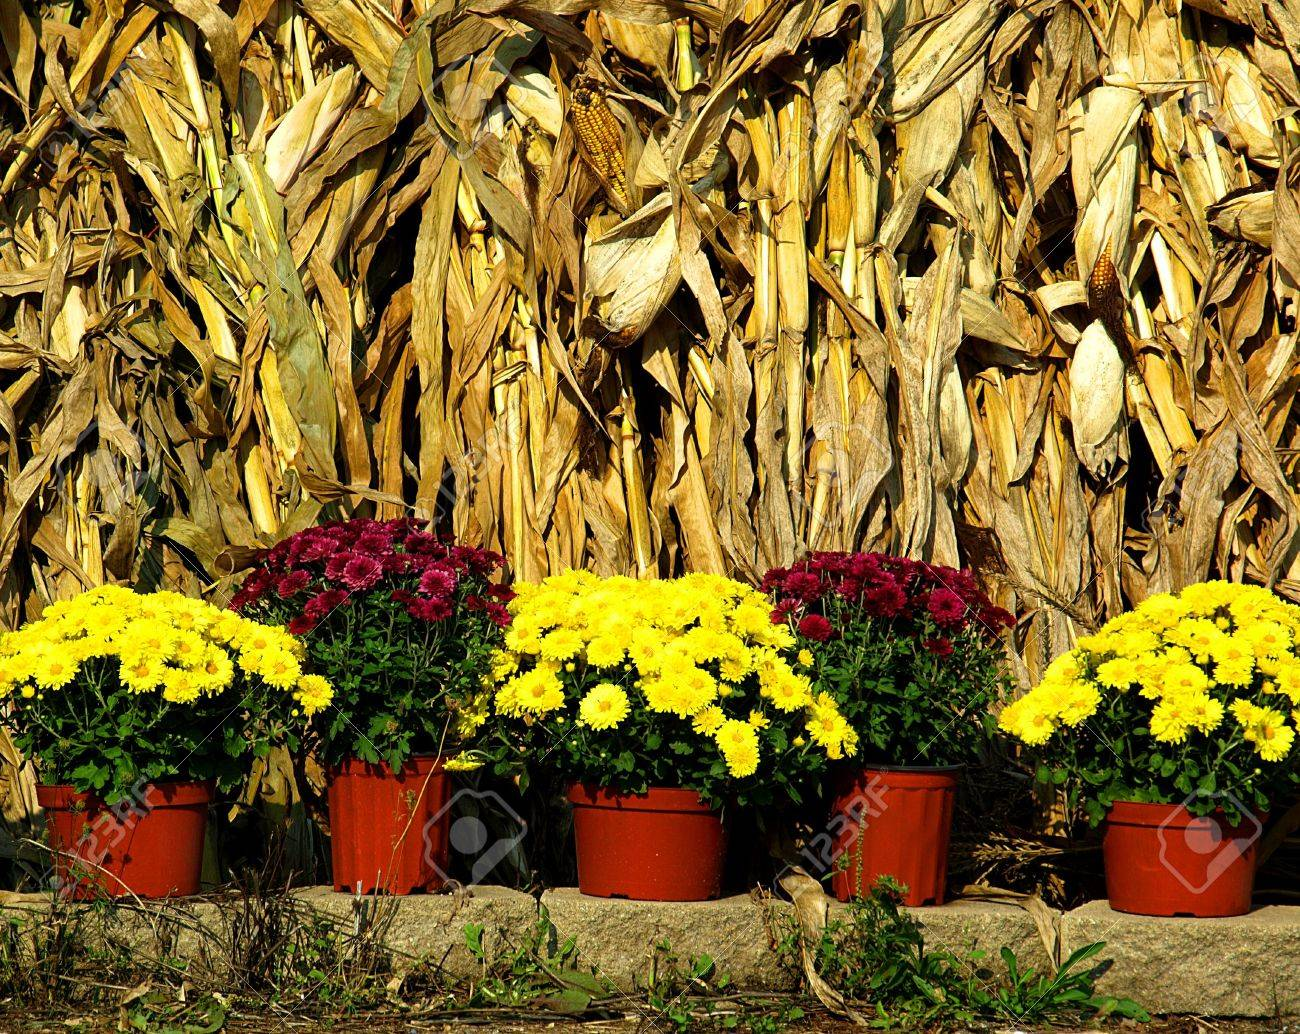 Stock Photo Image Of Bright Yellow Fall Mums In Pots With Corn 1300x1034